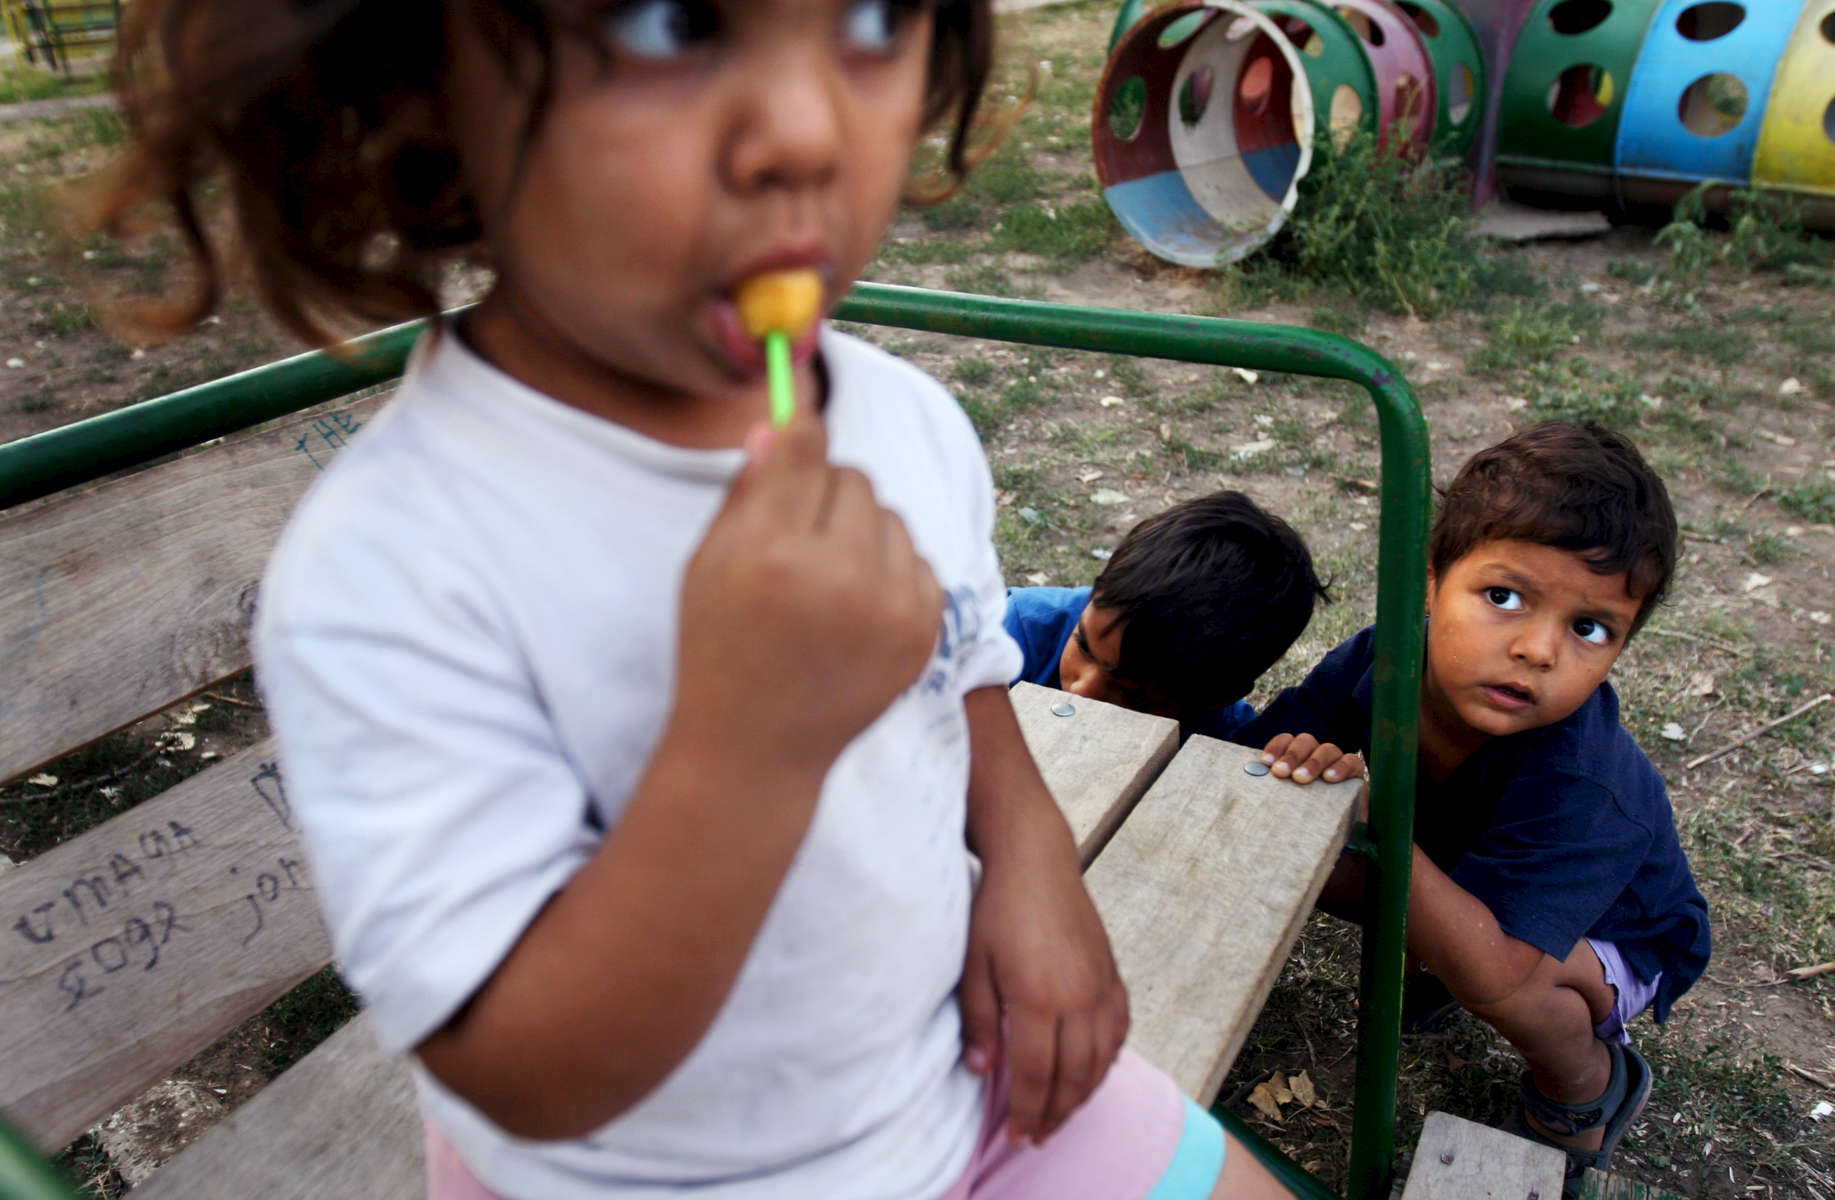 A little girl sucks a lollipop under the hungry gaze of a little friend at the Dom Maika i Dete (Home for Mother and Child) adoption home in Vidin, Bulgaria on August 31, 2008.Children for adoption in Vidin, Bulgaria, live here. The home's director, Maria Rangelova, describes that two decades ago, the home carried more than double the children, who were mostly given away because they were born out of wedlock. While the number of children has decreasted from about 180 to 80 from waning birth rates and shifting cultural perceptions of birth outside of marriage, there remain many kids in need of adoption. Now, she says, most parents who give their children away do so because of financial want -- one that robs them of the ability to support their kids, or leaves them unable to cure an illness that has incapacitated them as caregivers. The home often struggles to provide an adequate amount of toys, snacks and personnel necessary for the children's caregiving.